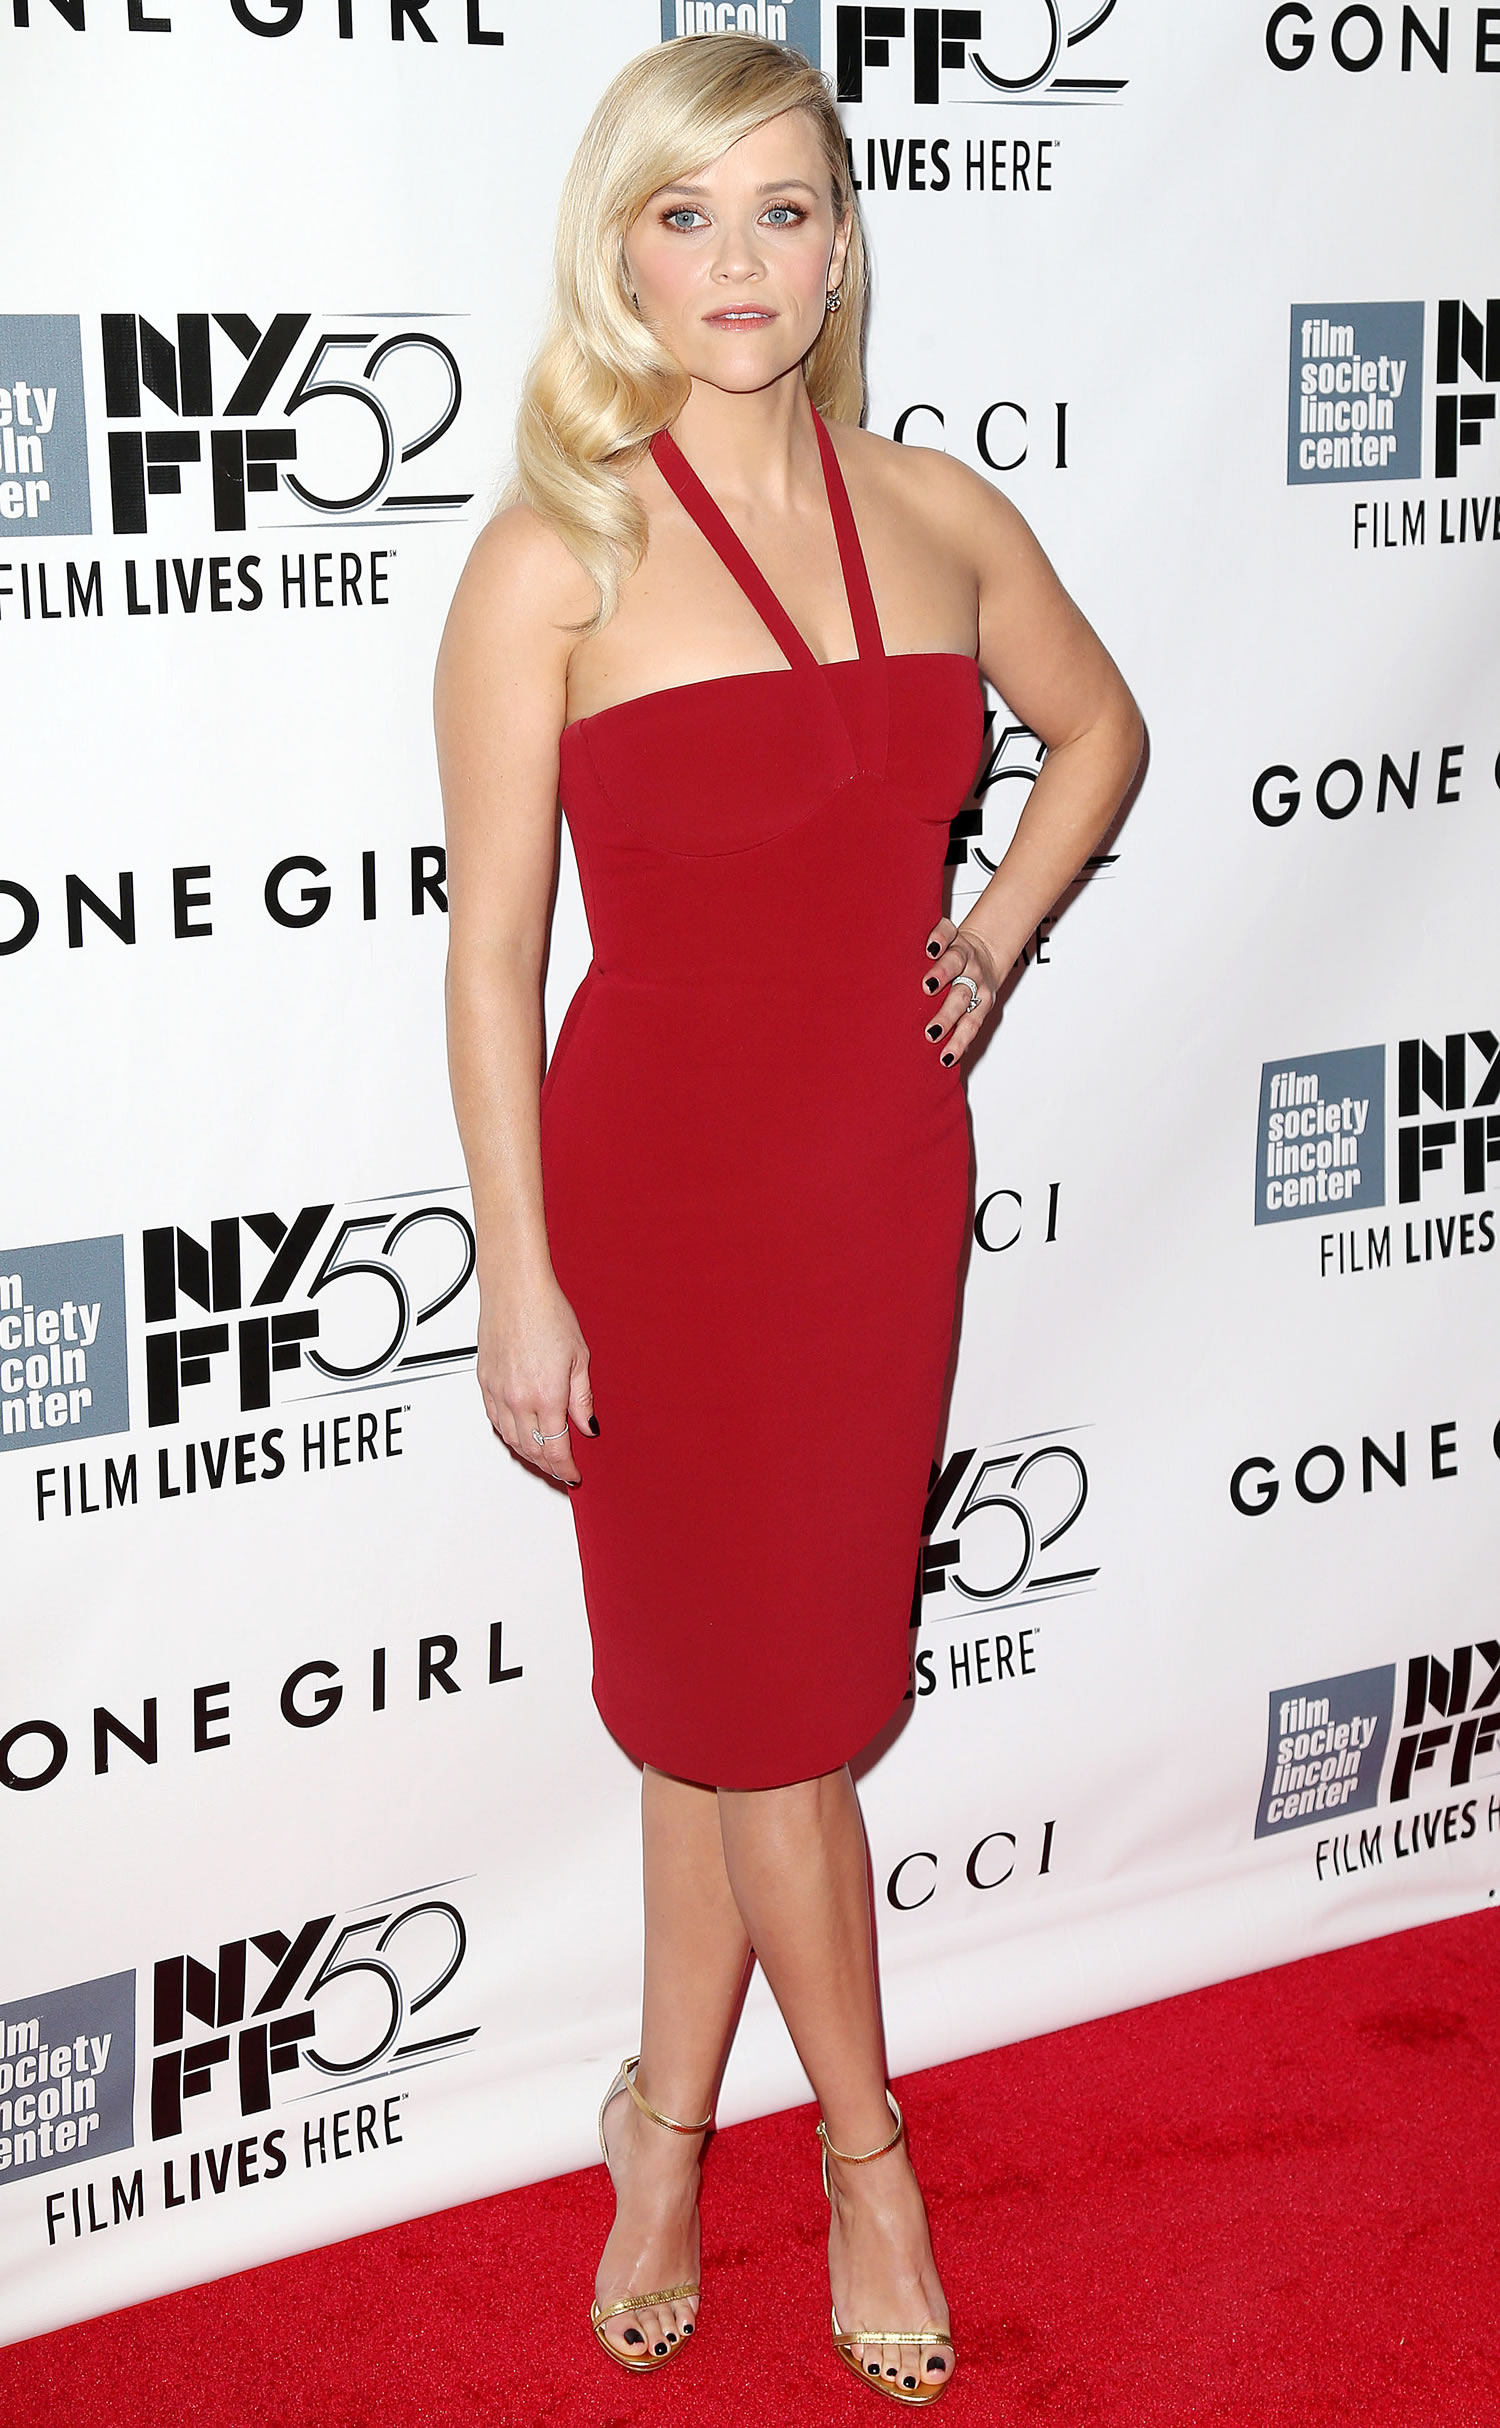 reese witherspoon gone girl gremiere 2014 new york film festival 1 Reese Witherspoon wears  Calvin Klein  at the 'Gone Girl' World Premiere